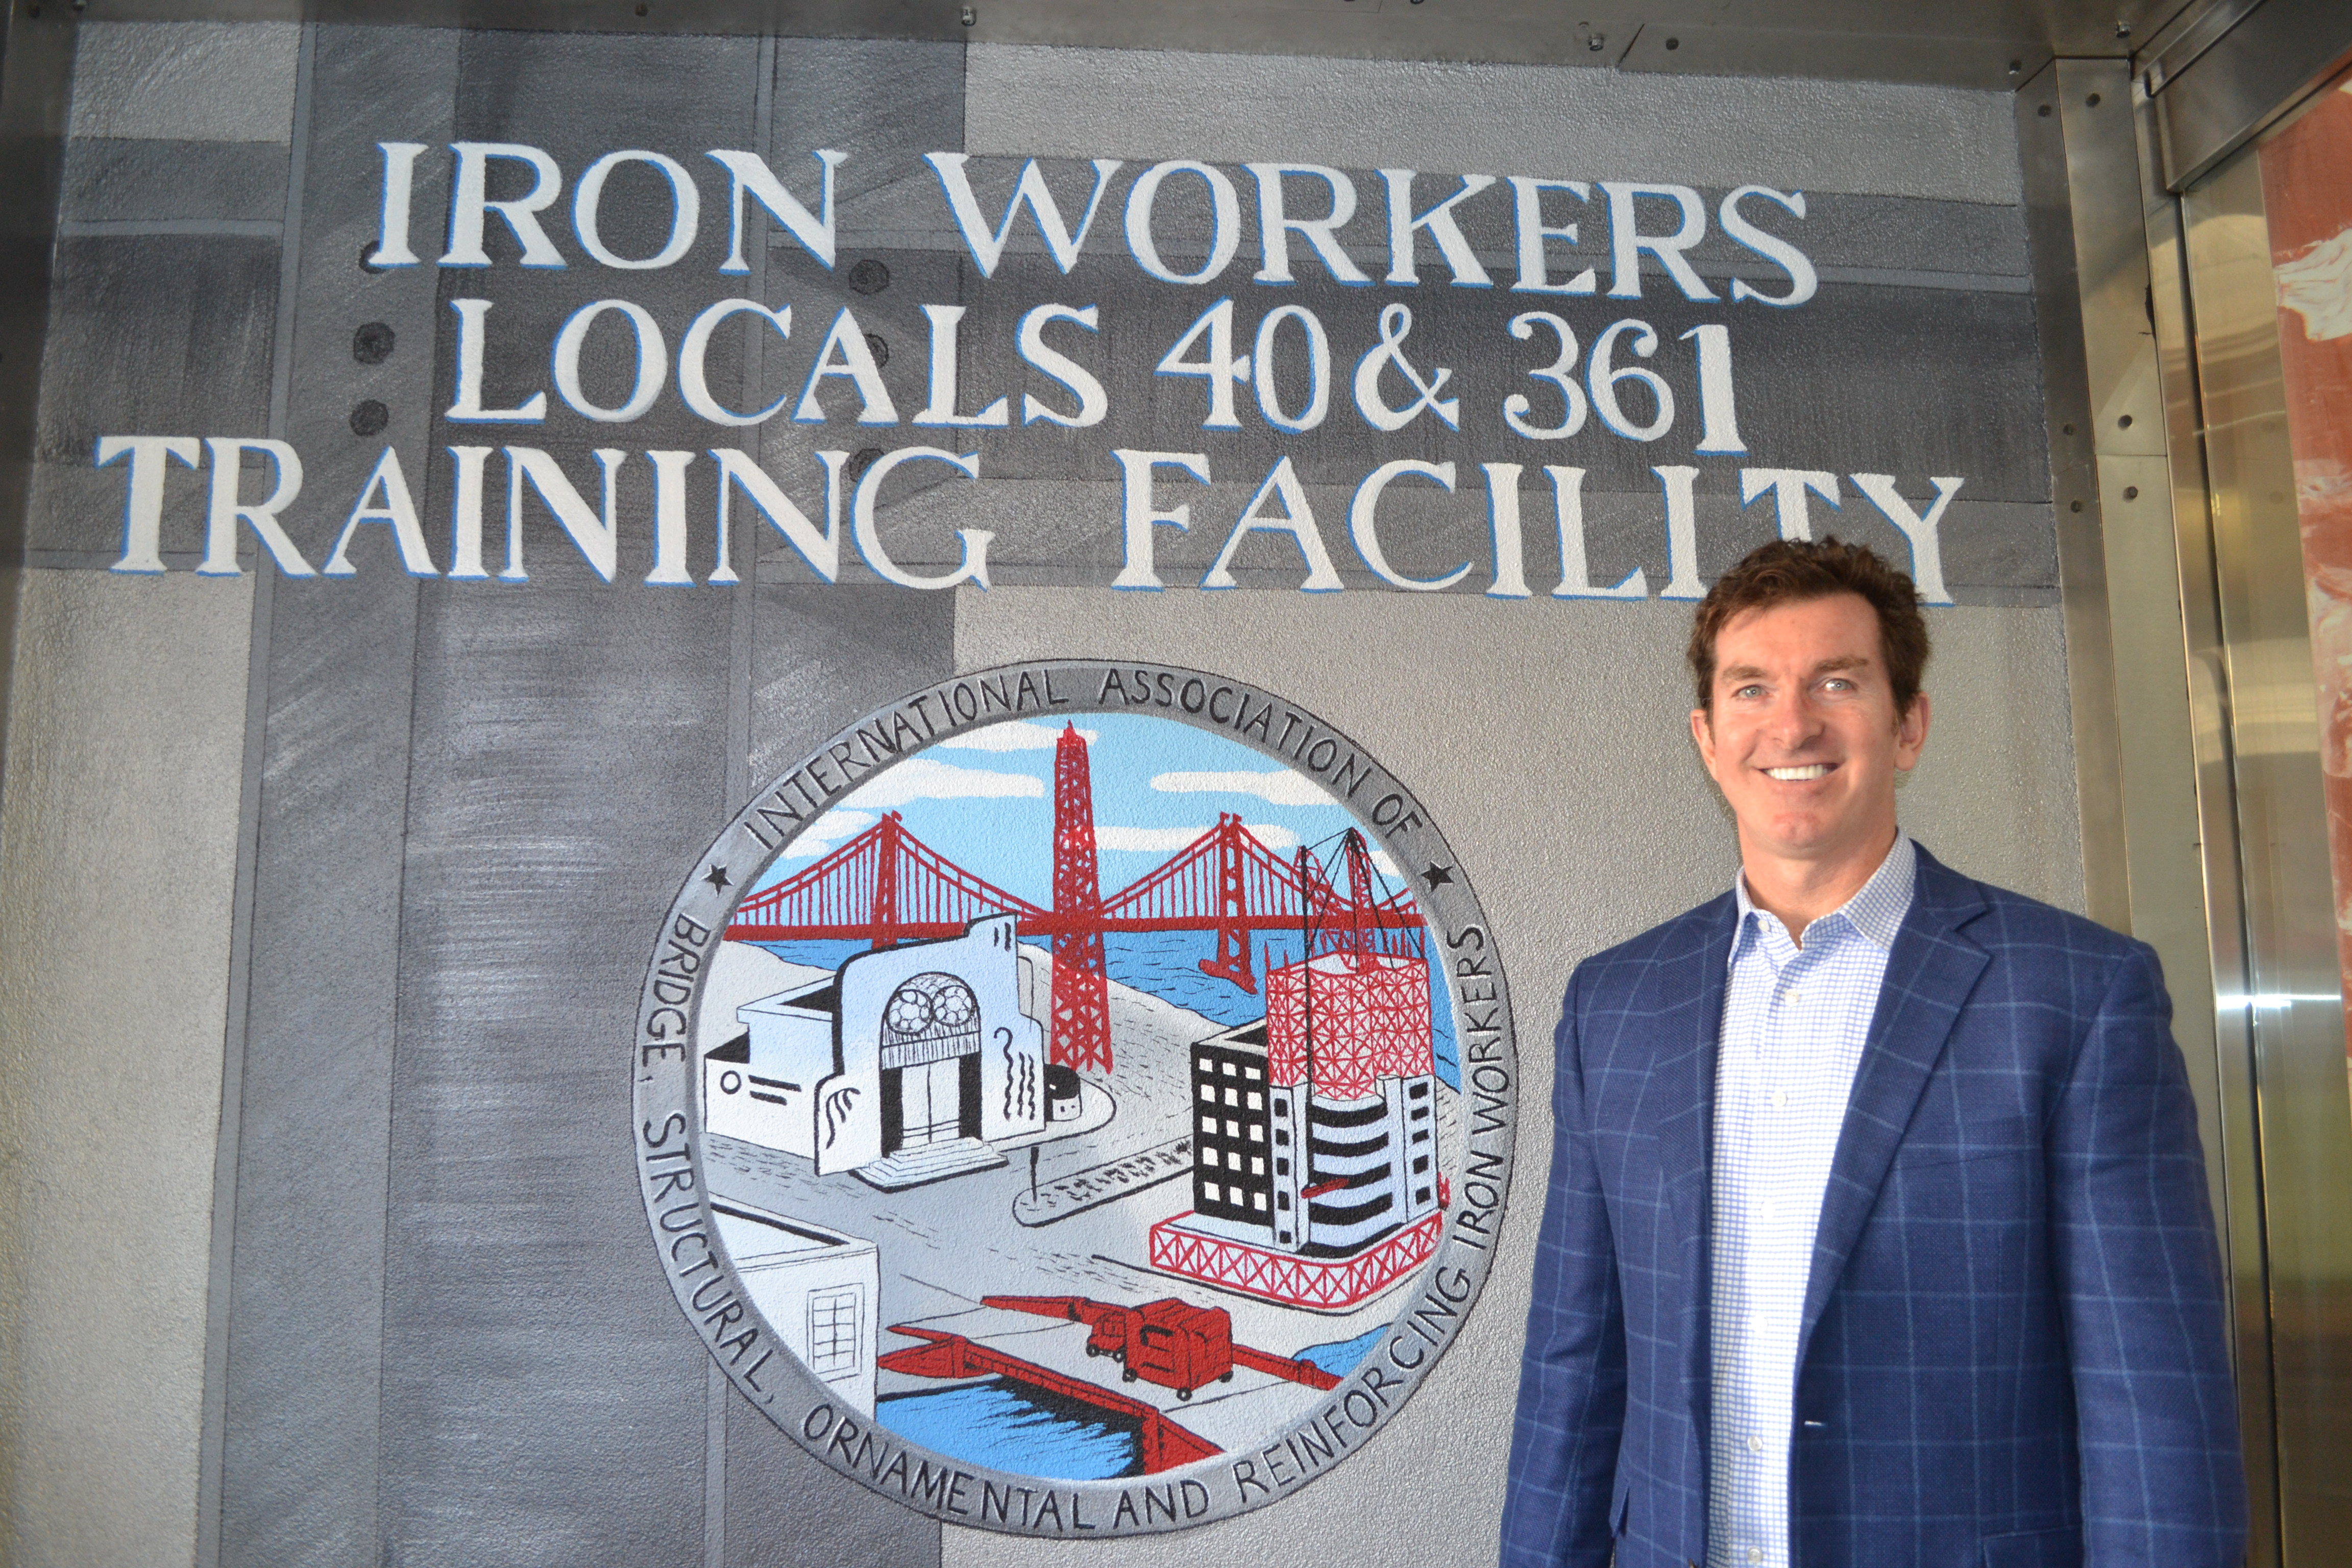 Iron Workers Locals 40 & 361 Training Facility: Producing the Safest and Most Professional People in the Industry